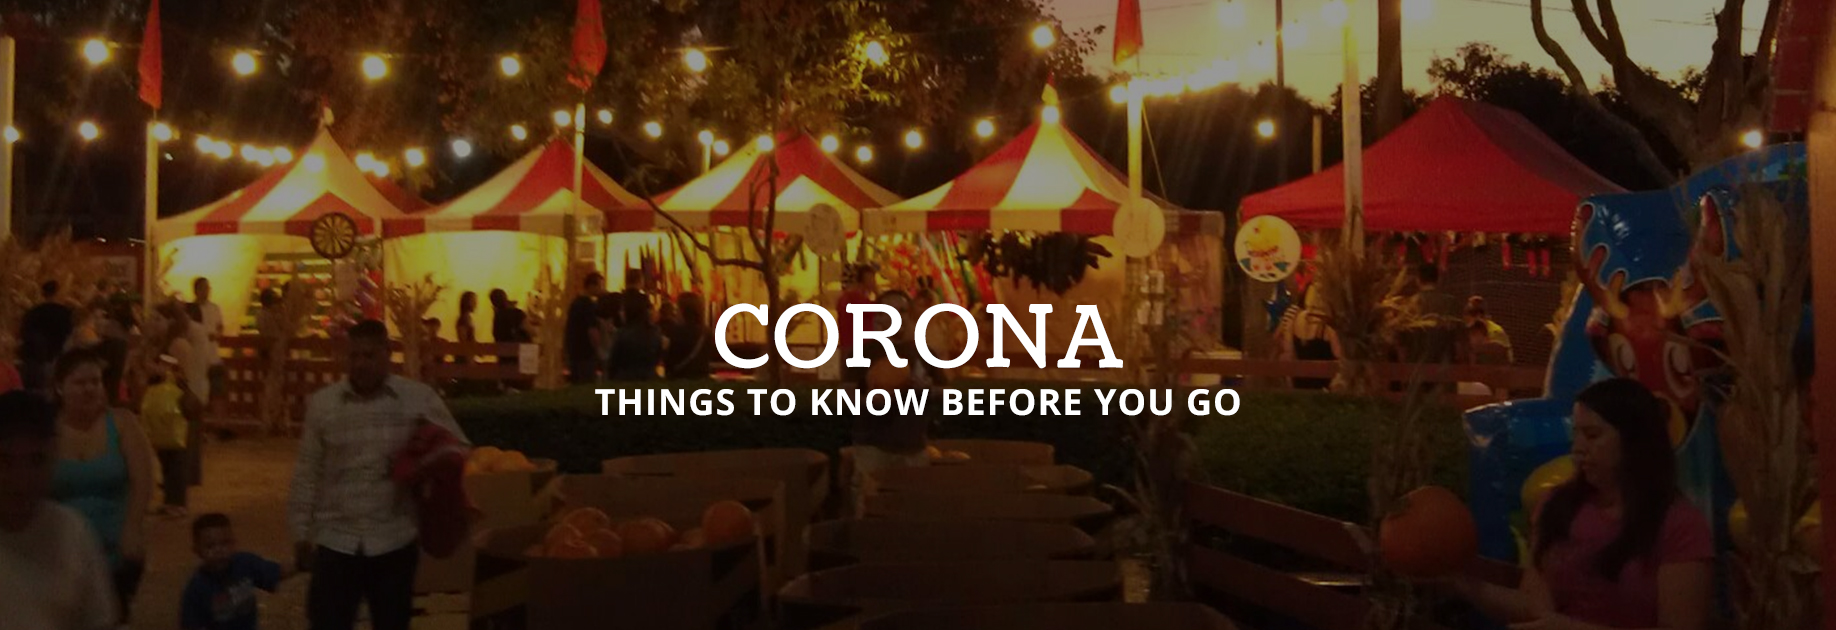 Corona-KnowBeforeYouGo-Hero-1